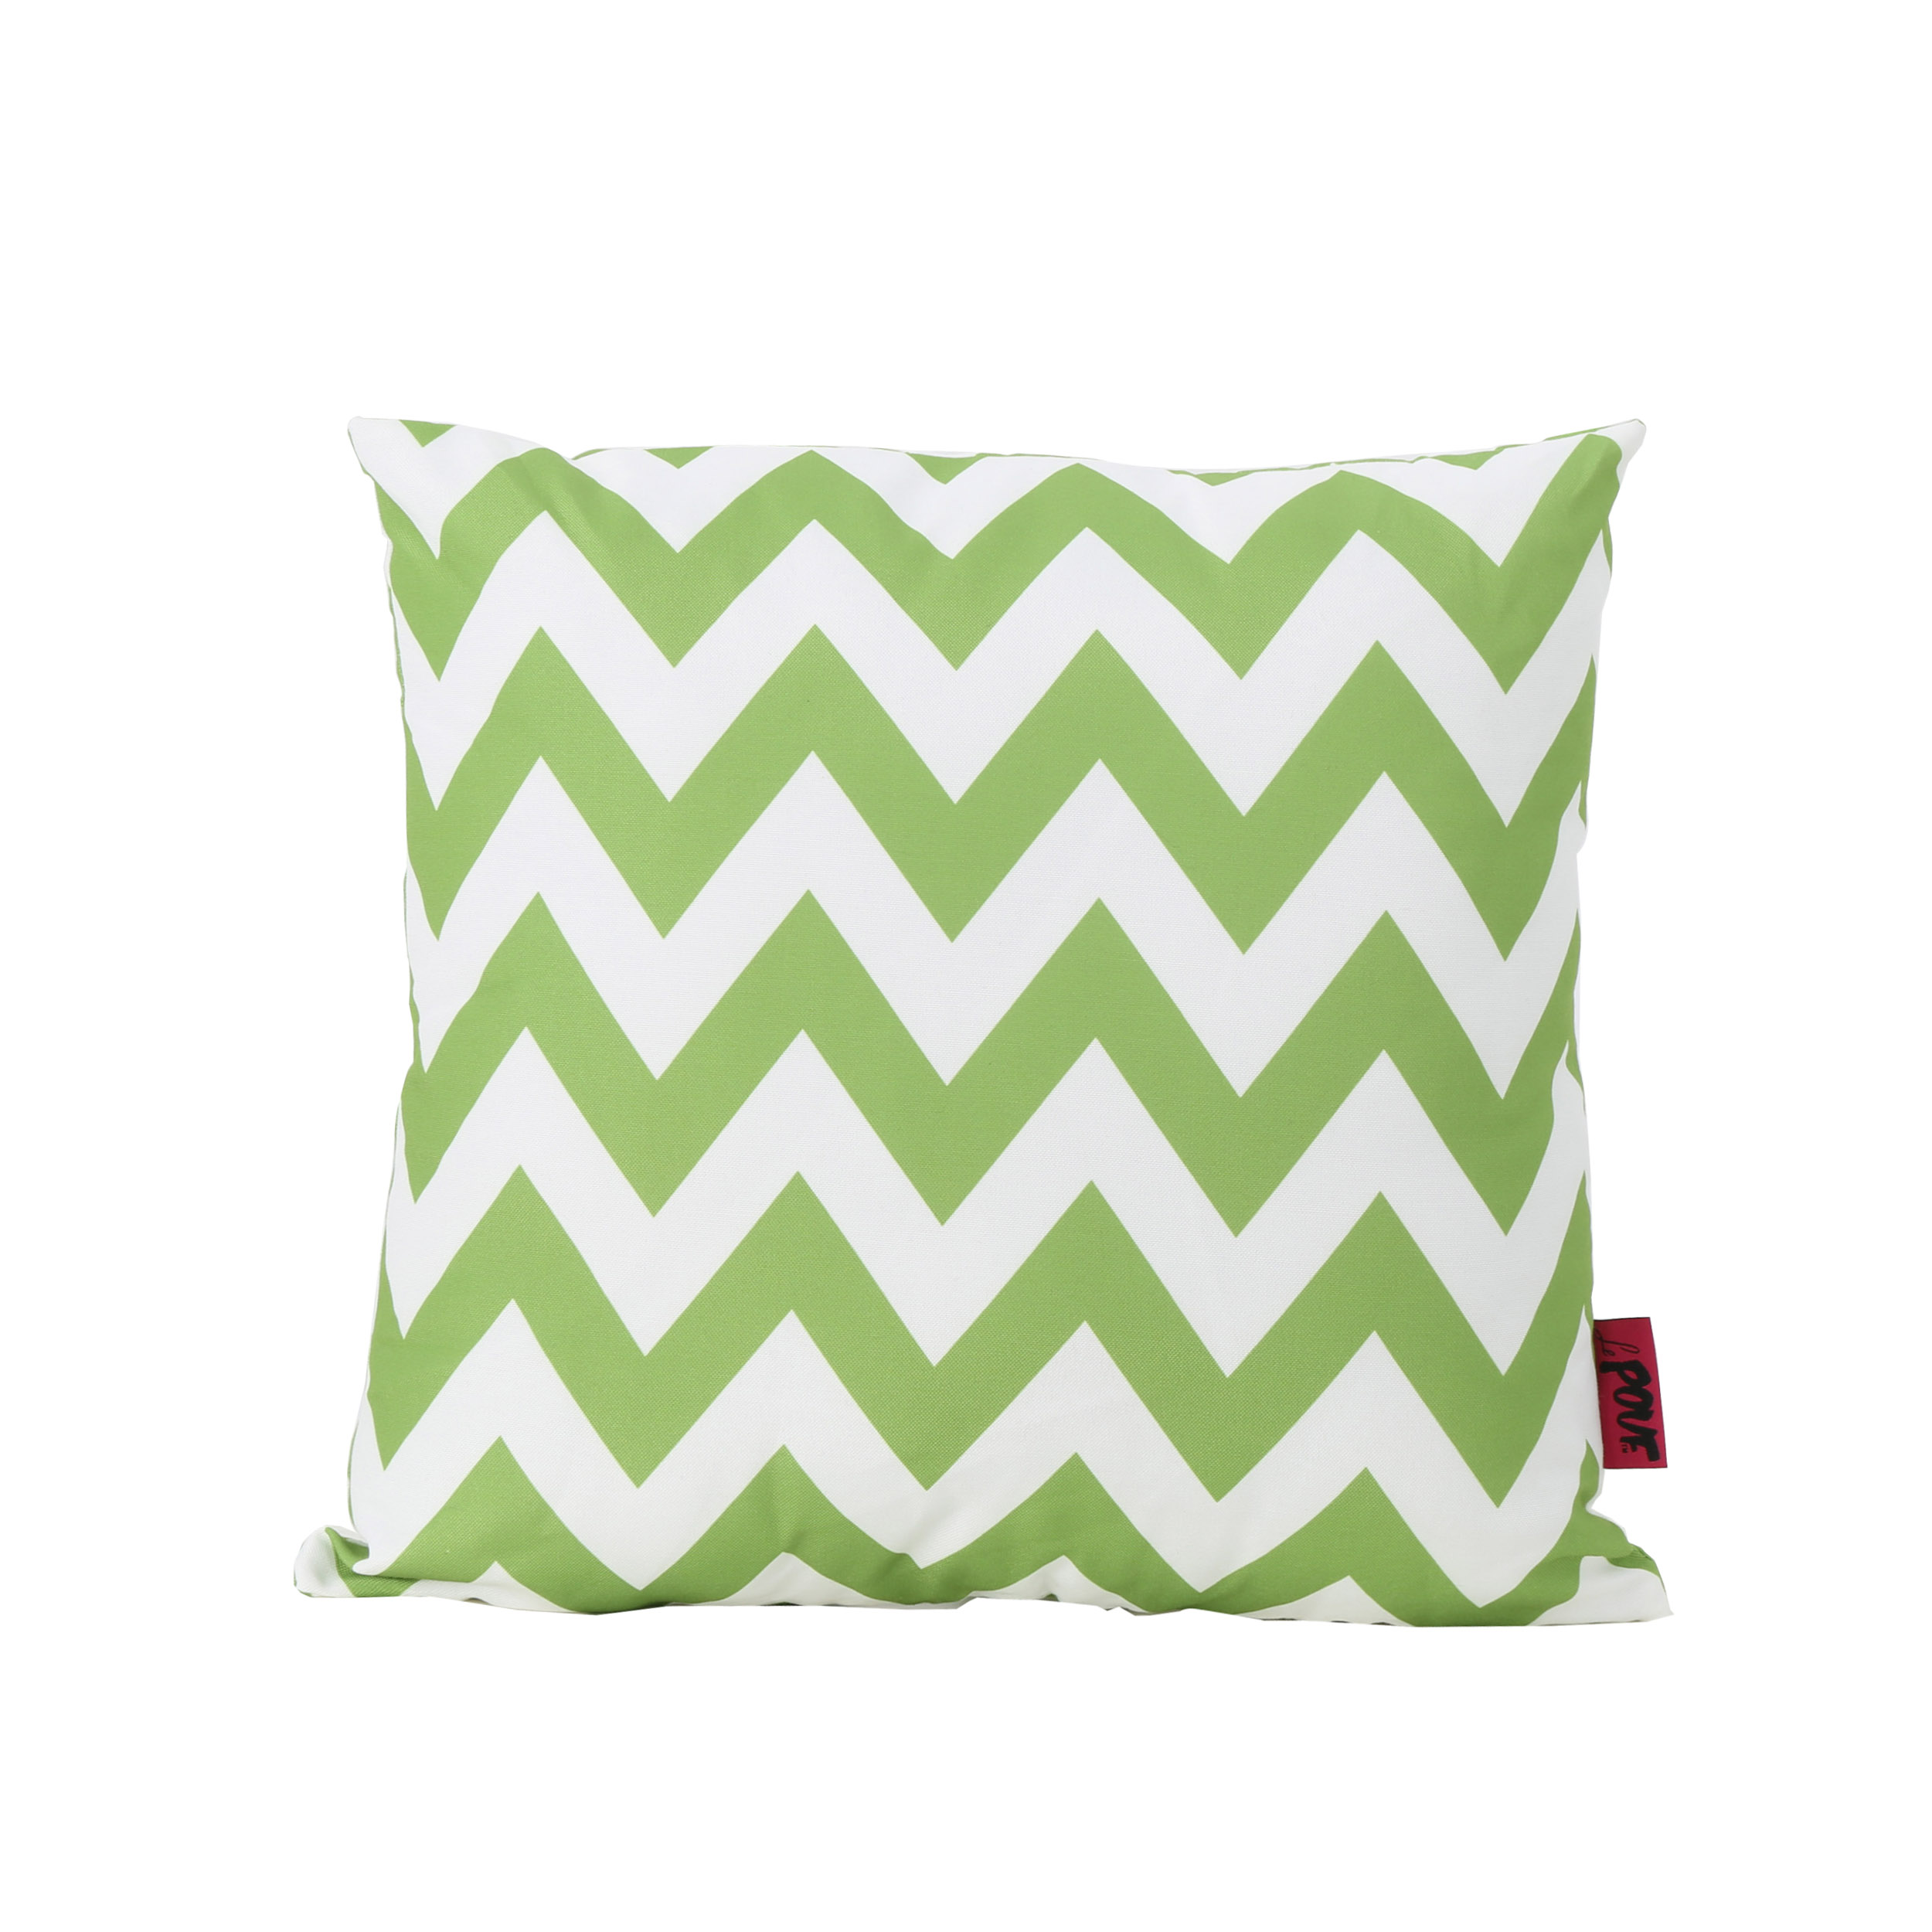 Ernest Indoor Water Resistant Square Throw Pillow, Green and White Zig Zag Stripe by GDF Studio